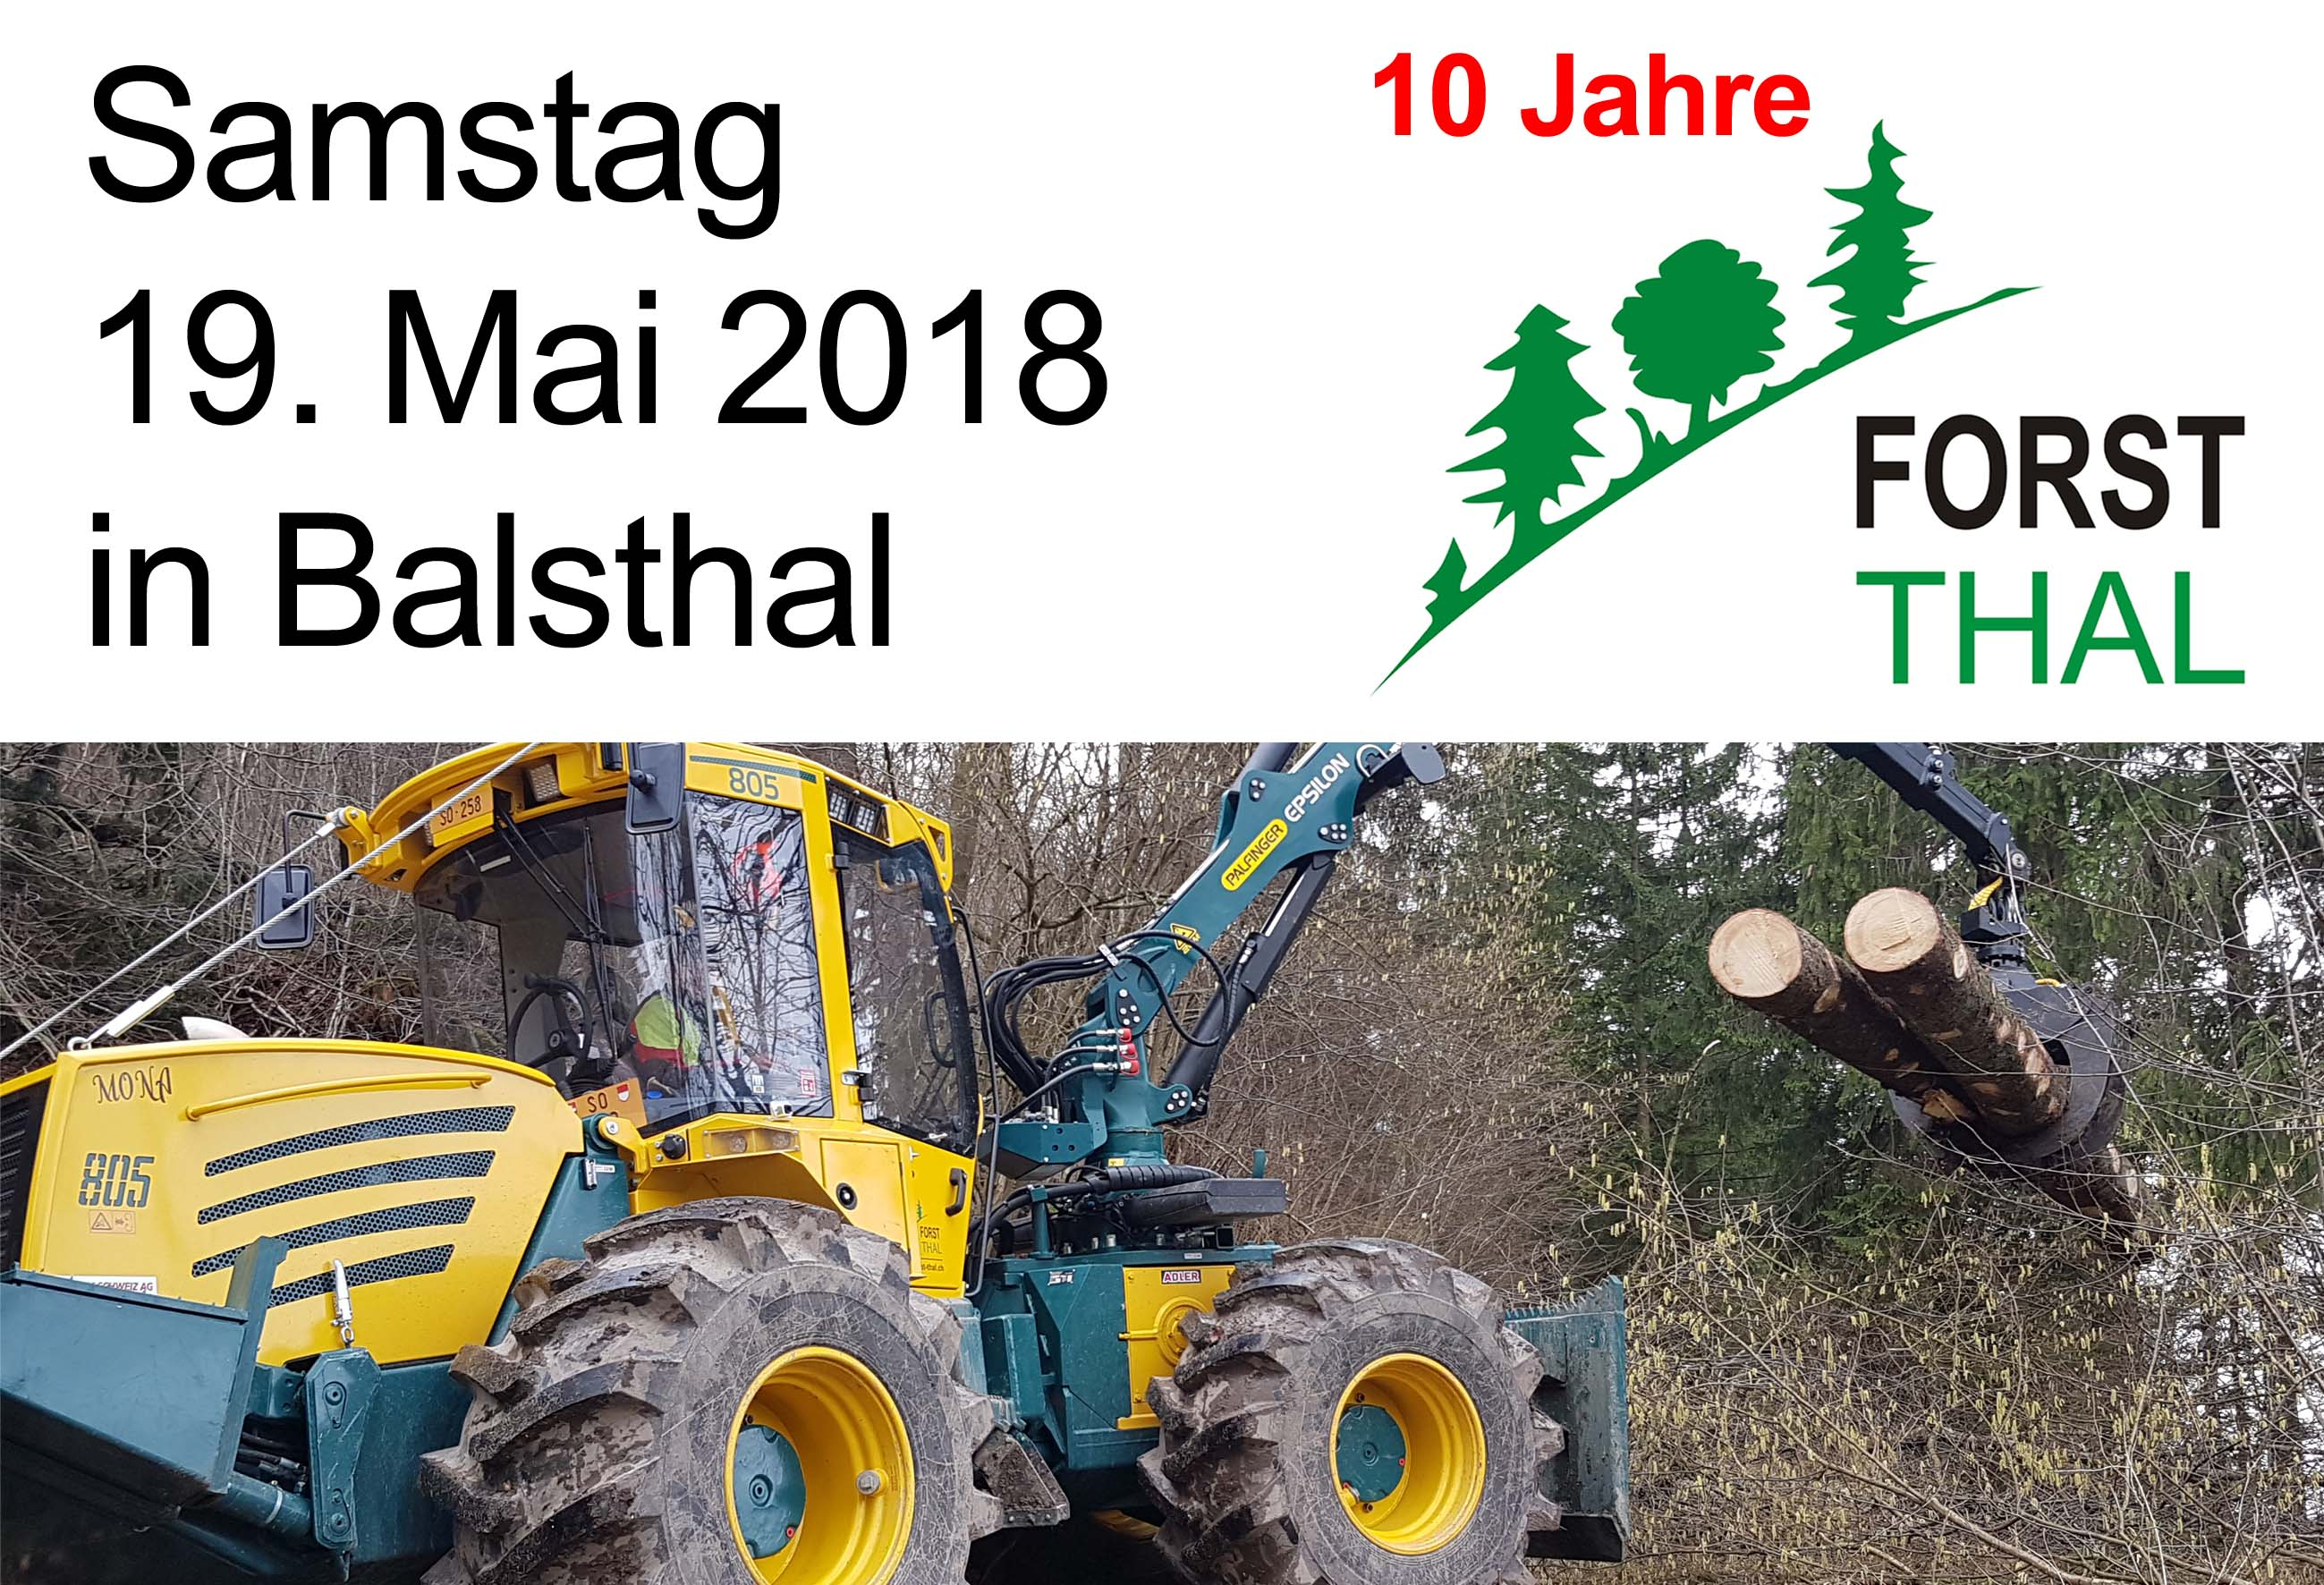 Forst Thal 10 Jahre